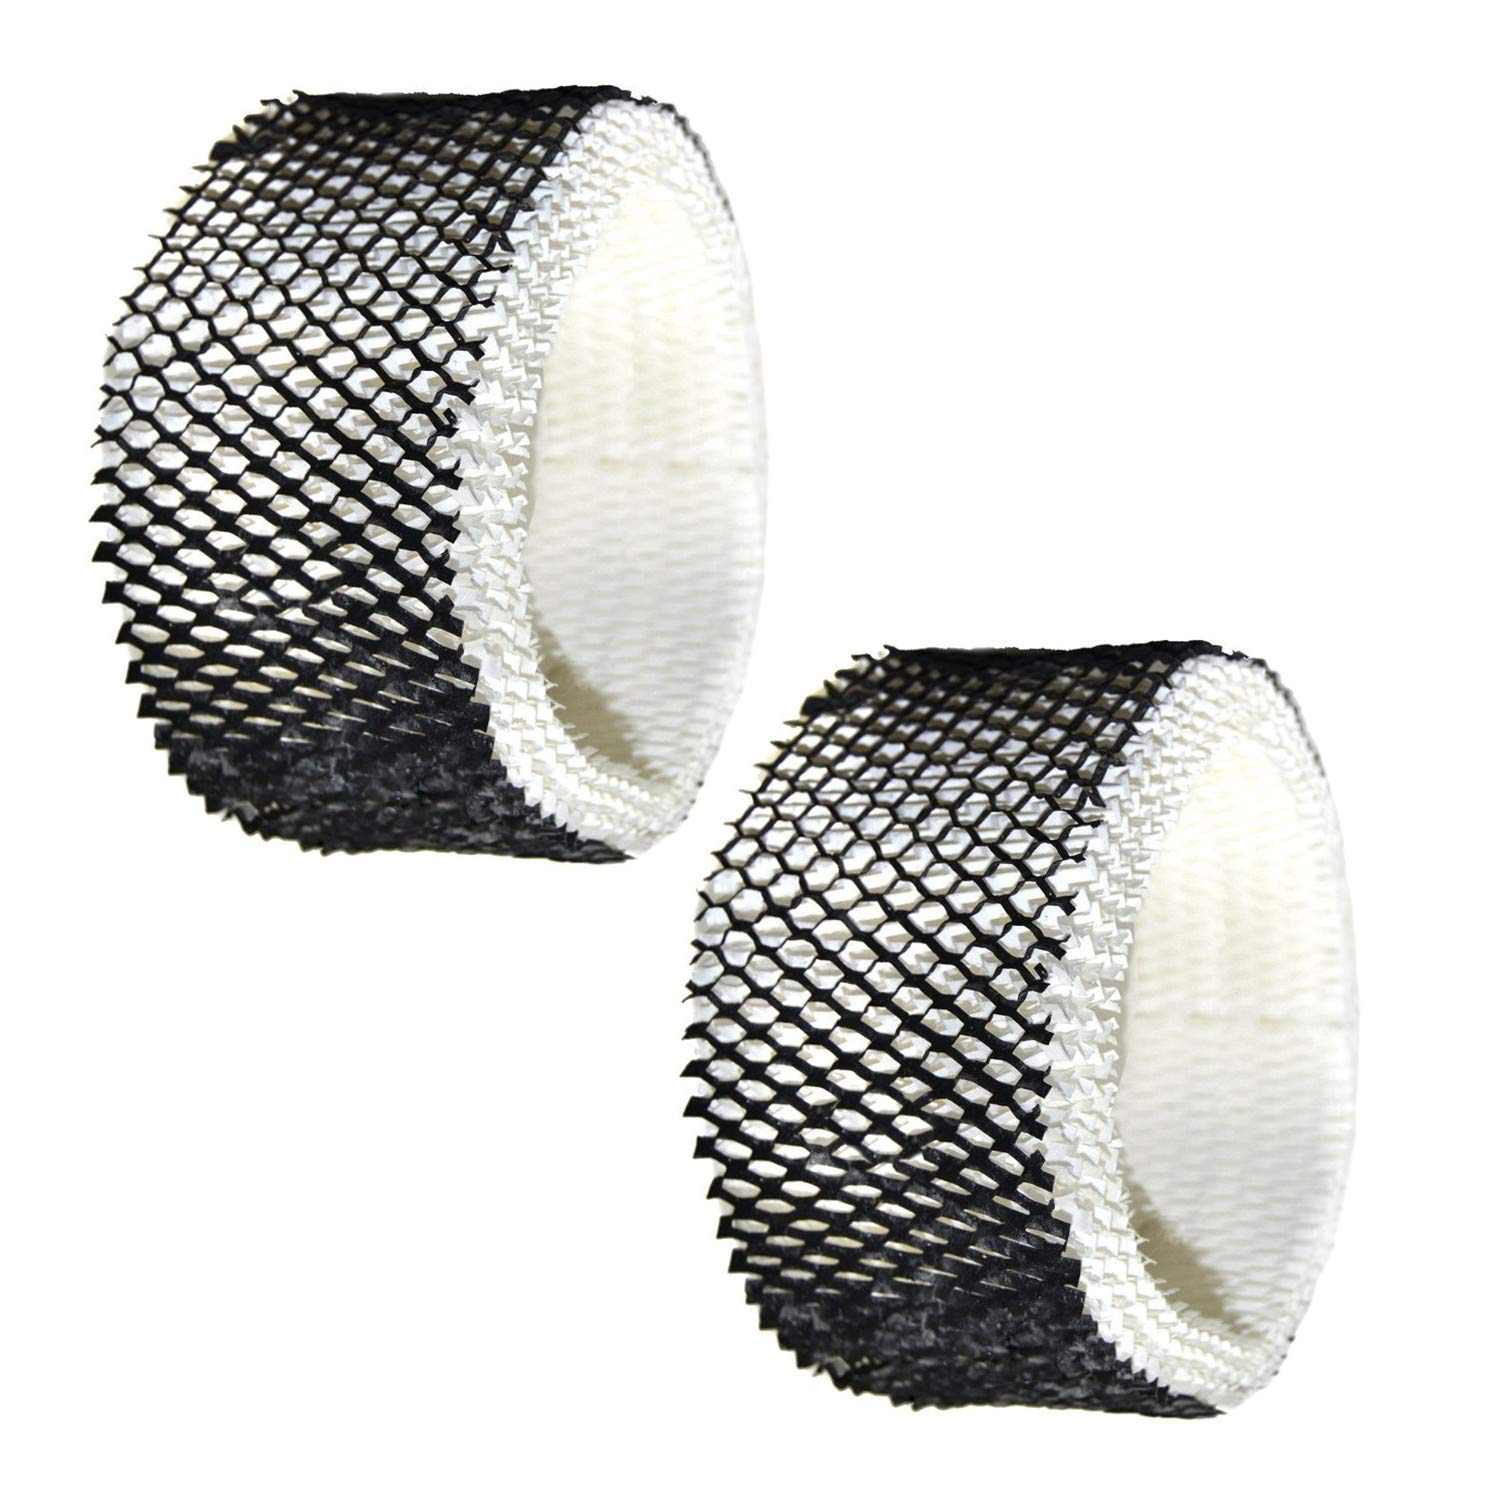 HQRP 2-Pack Wick Filter for Hamilton Beach 05518, 05519 Humidifiers, 05910 Replacement Coaster